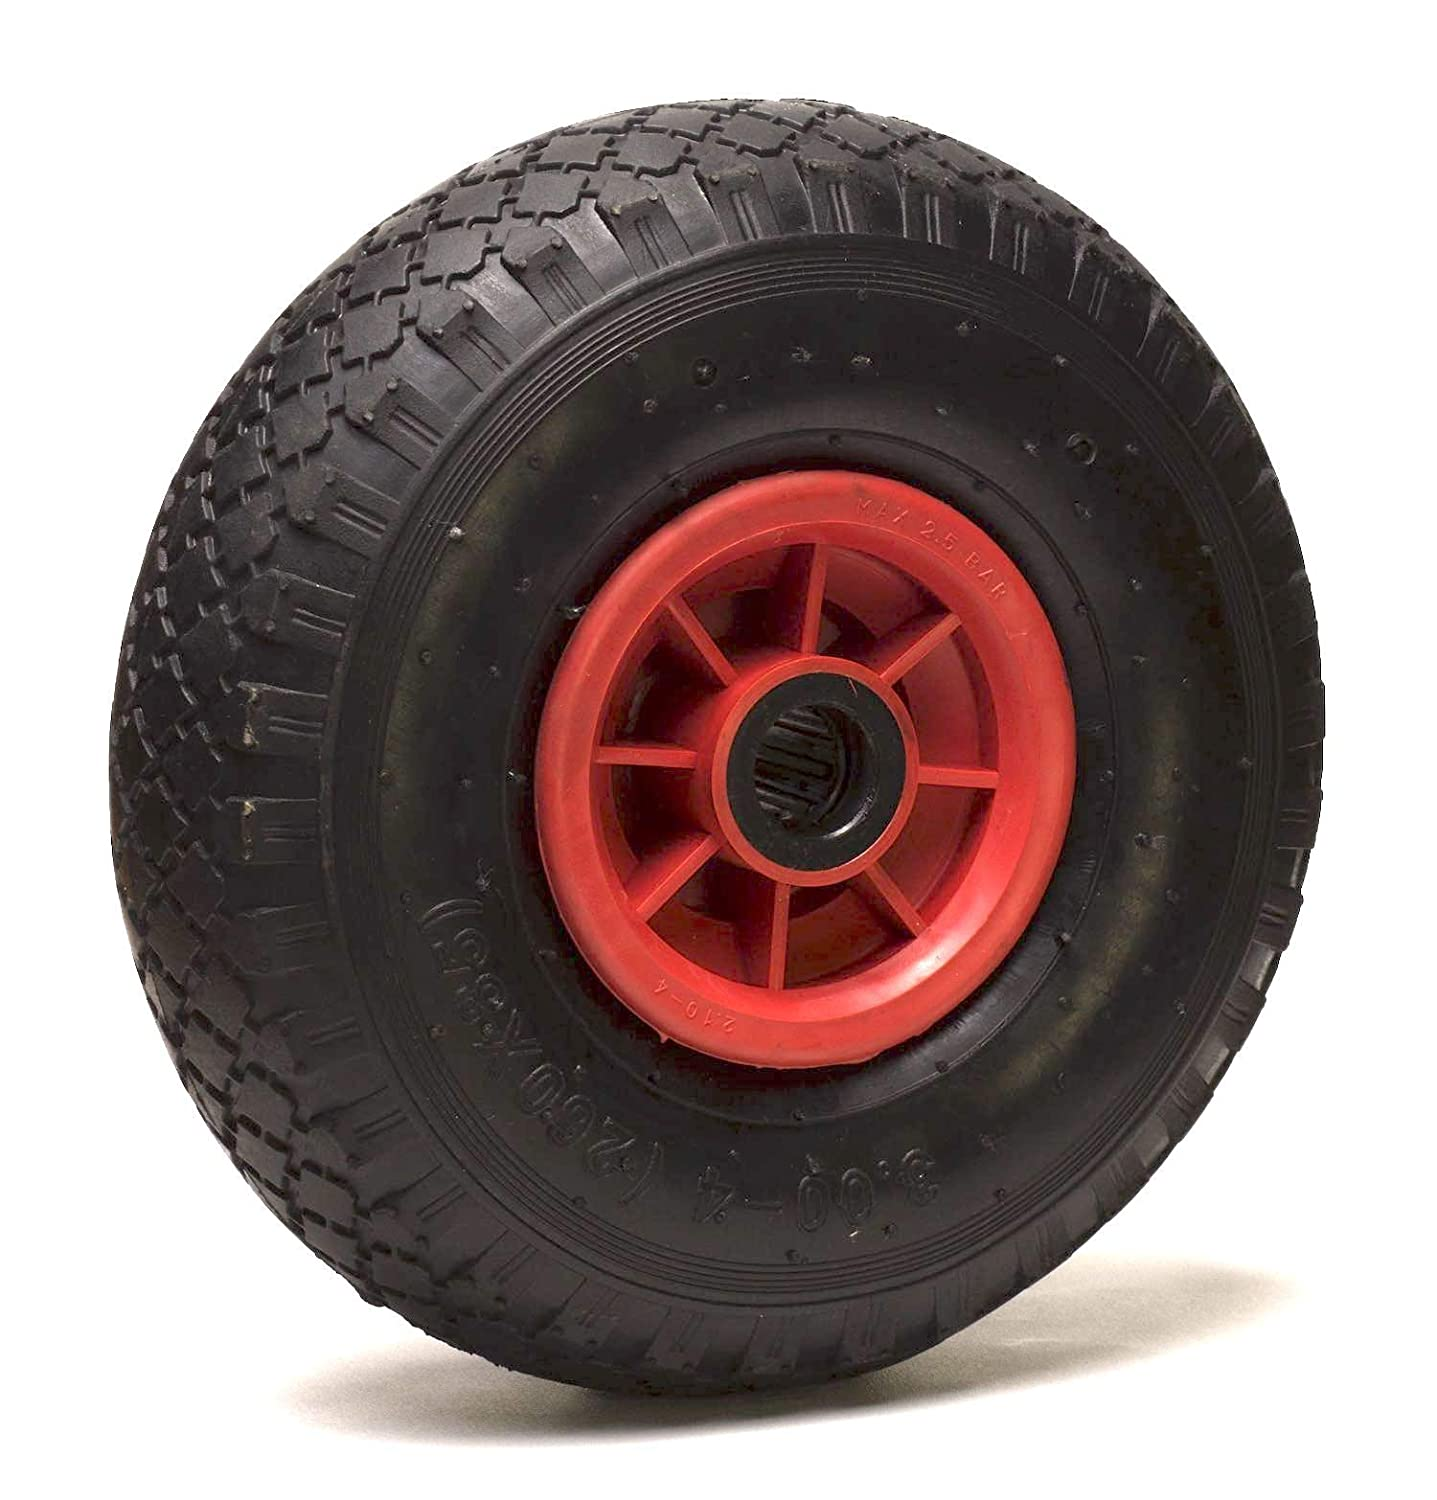 81400251 Pneumatic Wheel with Plastic Body, Diameter 260  x 85  mm, Bore 25 mm Diameter 260 x 85 mm Roues-et-Roulettes.com